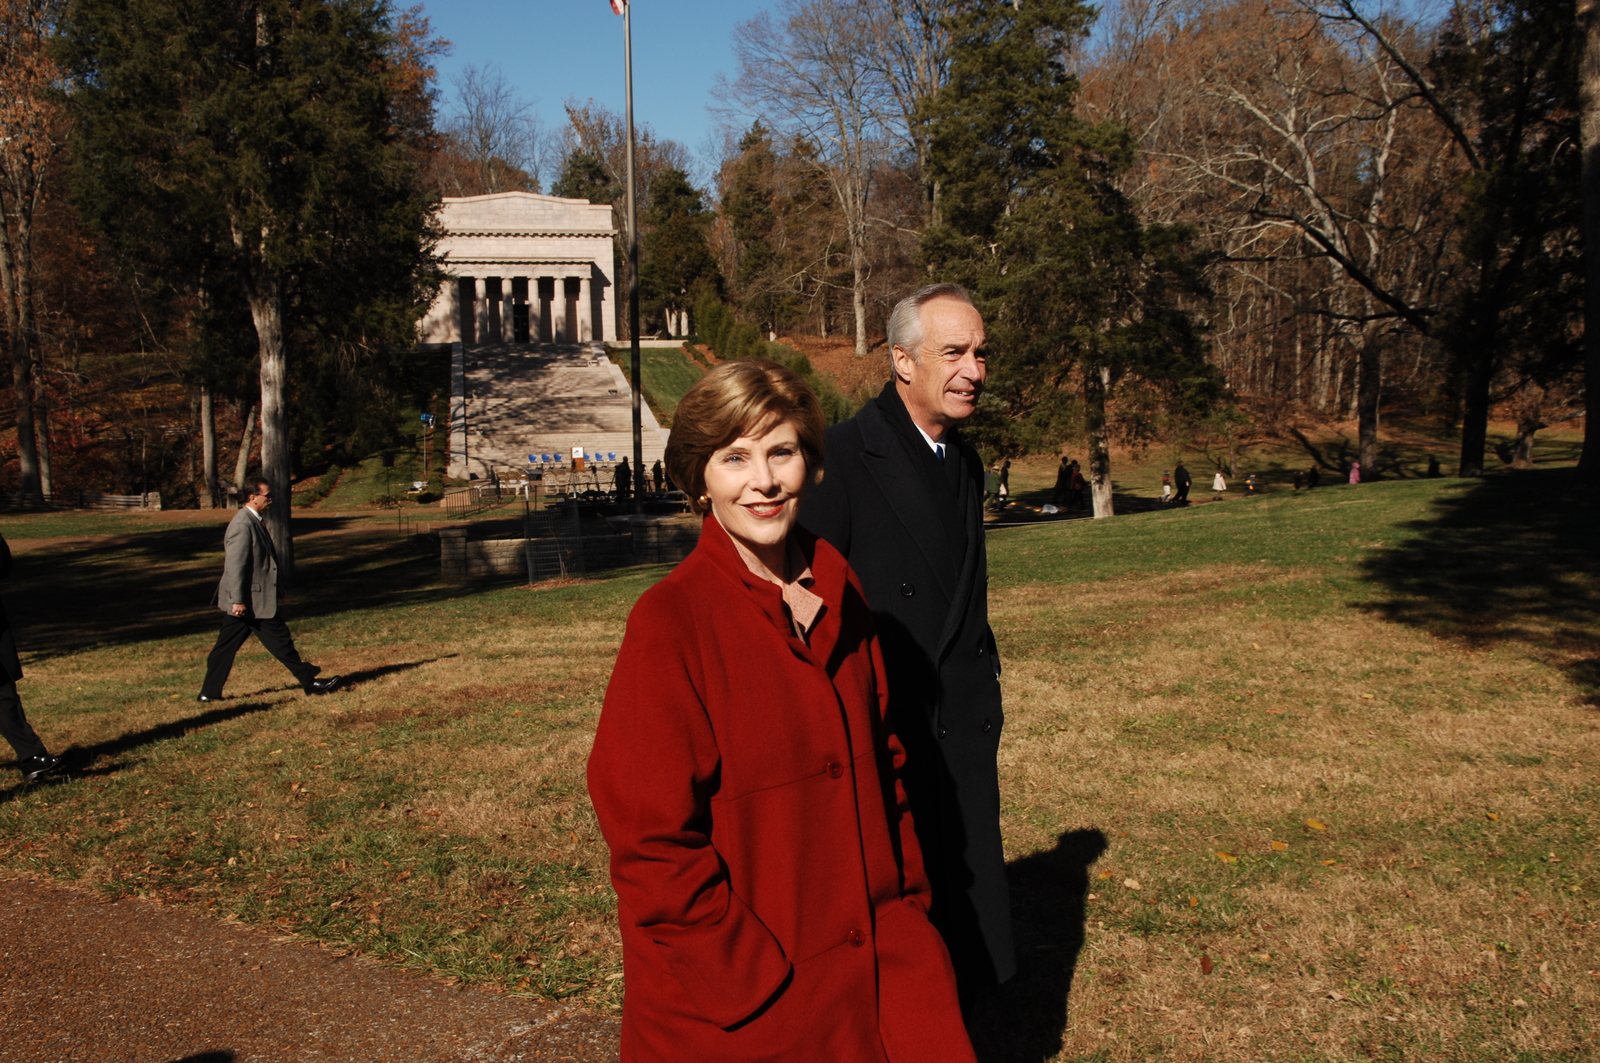 [Assignment: 48-DPA-11-18-08_SOI_K_FLOTUS] Visit of Secretary Dirk Kempthorne to the Abraham Lincoln Birthplace National Historic Site in Hodgenville, Kentucky, where he joined First Lady Laura Bush, [Historic Site Superintendent Keith Pruitt, and Libby O'Connell, Chief Historian of A and E Television's History Channel, for tours, remarks, interactions with National Park Service staff and visitors] [48-DPA-11-18-08_SOI_K_FLOTUS_IOD_8247.JPG]